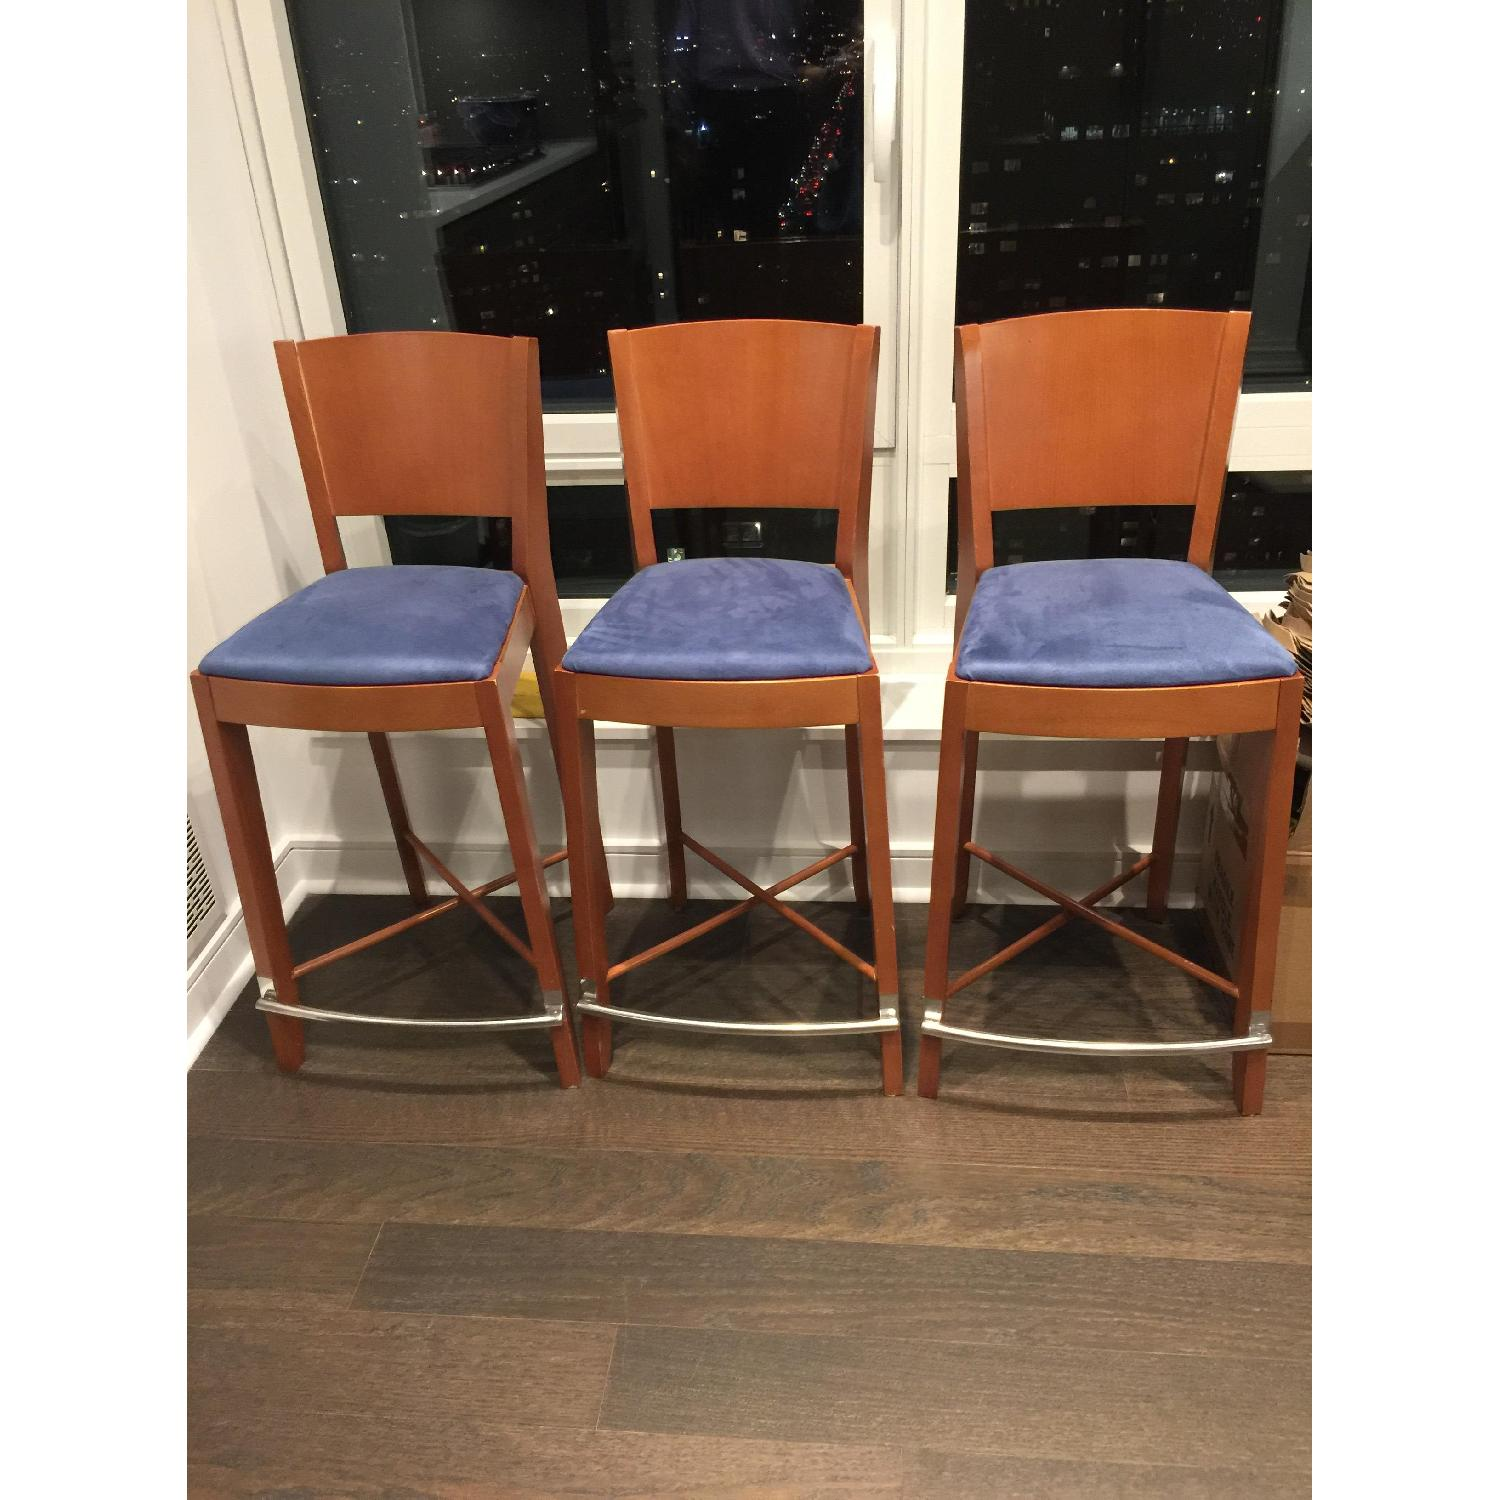 The Morson Collection Cherry Veneer & Ultrasuede Dining Stools - image-1